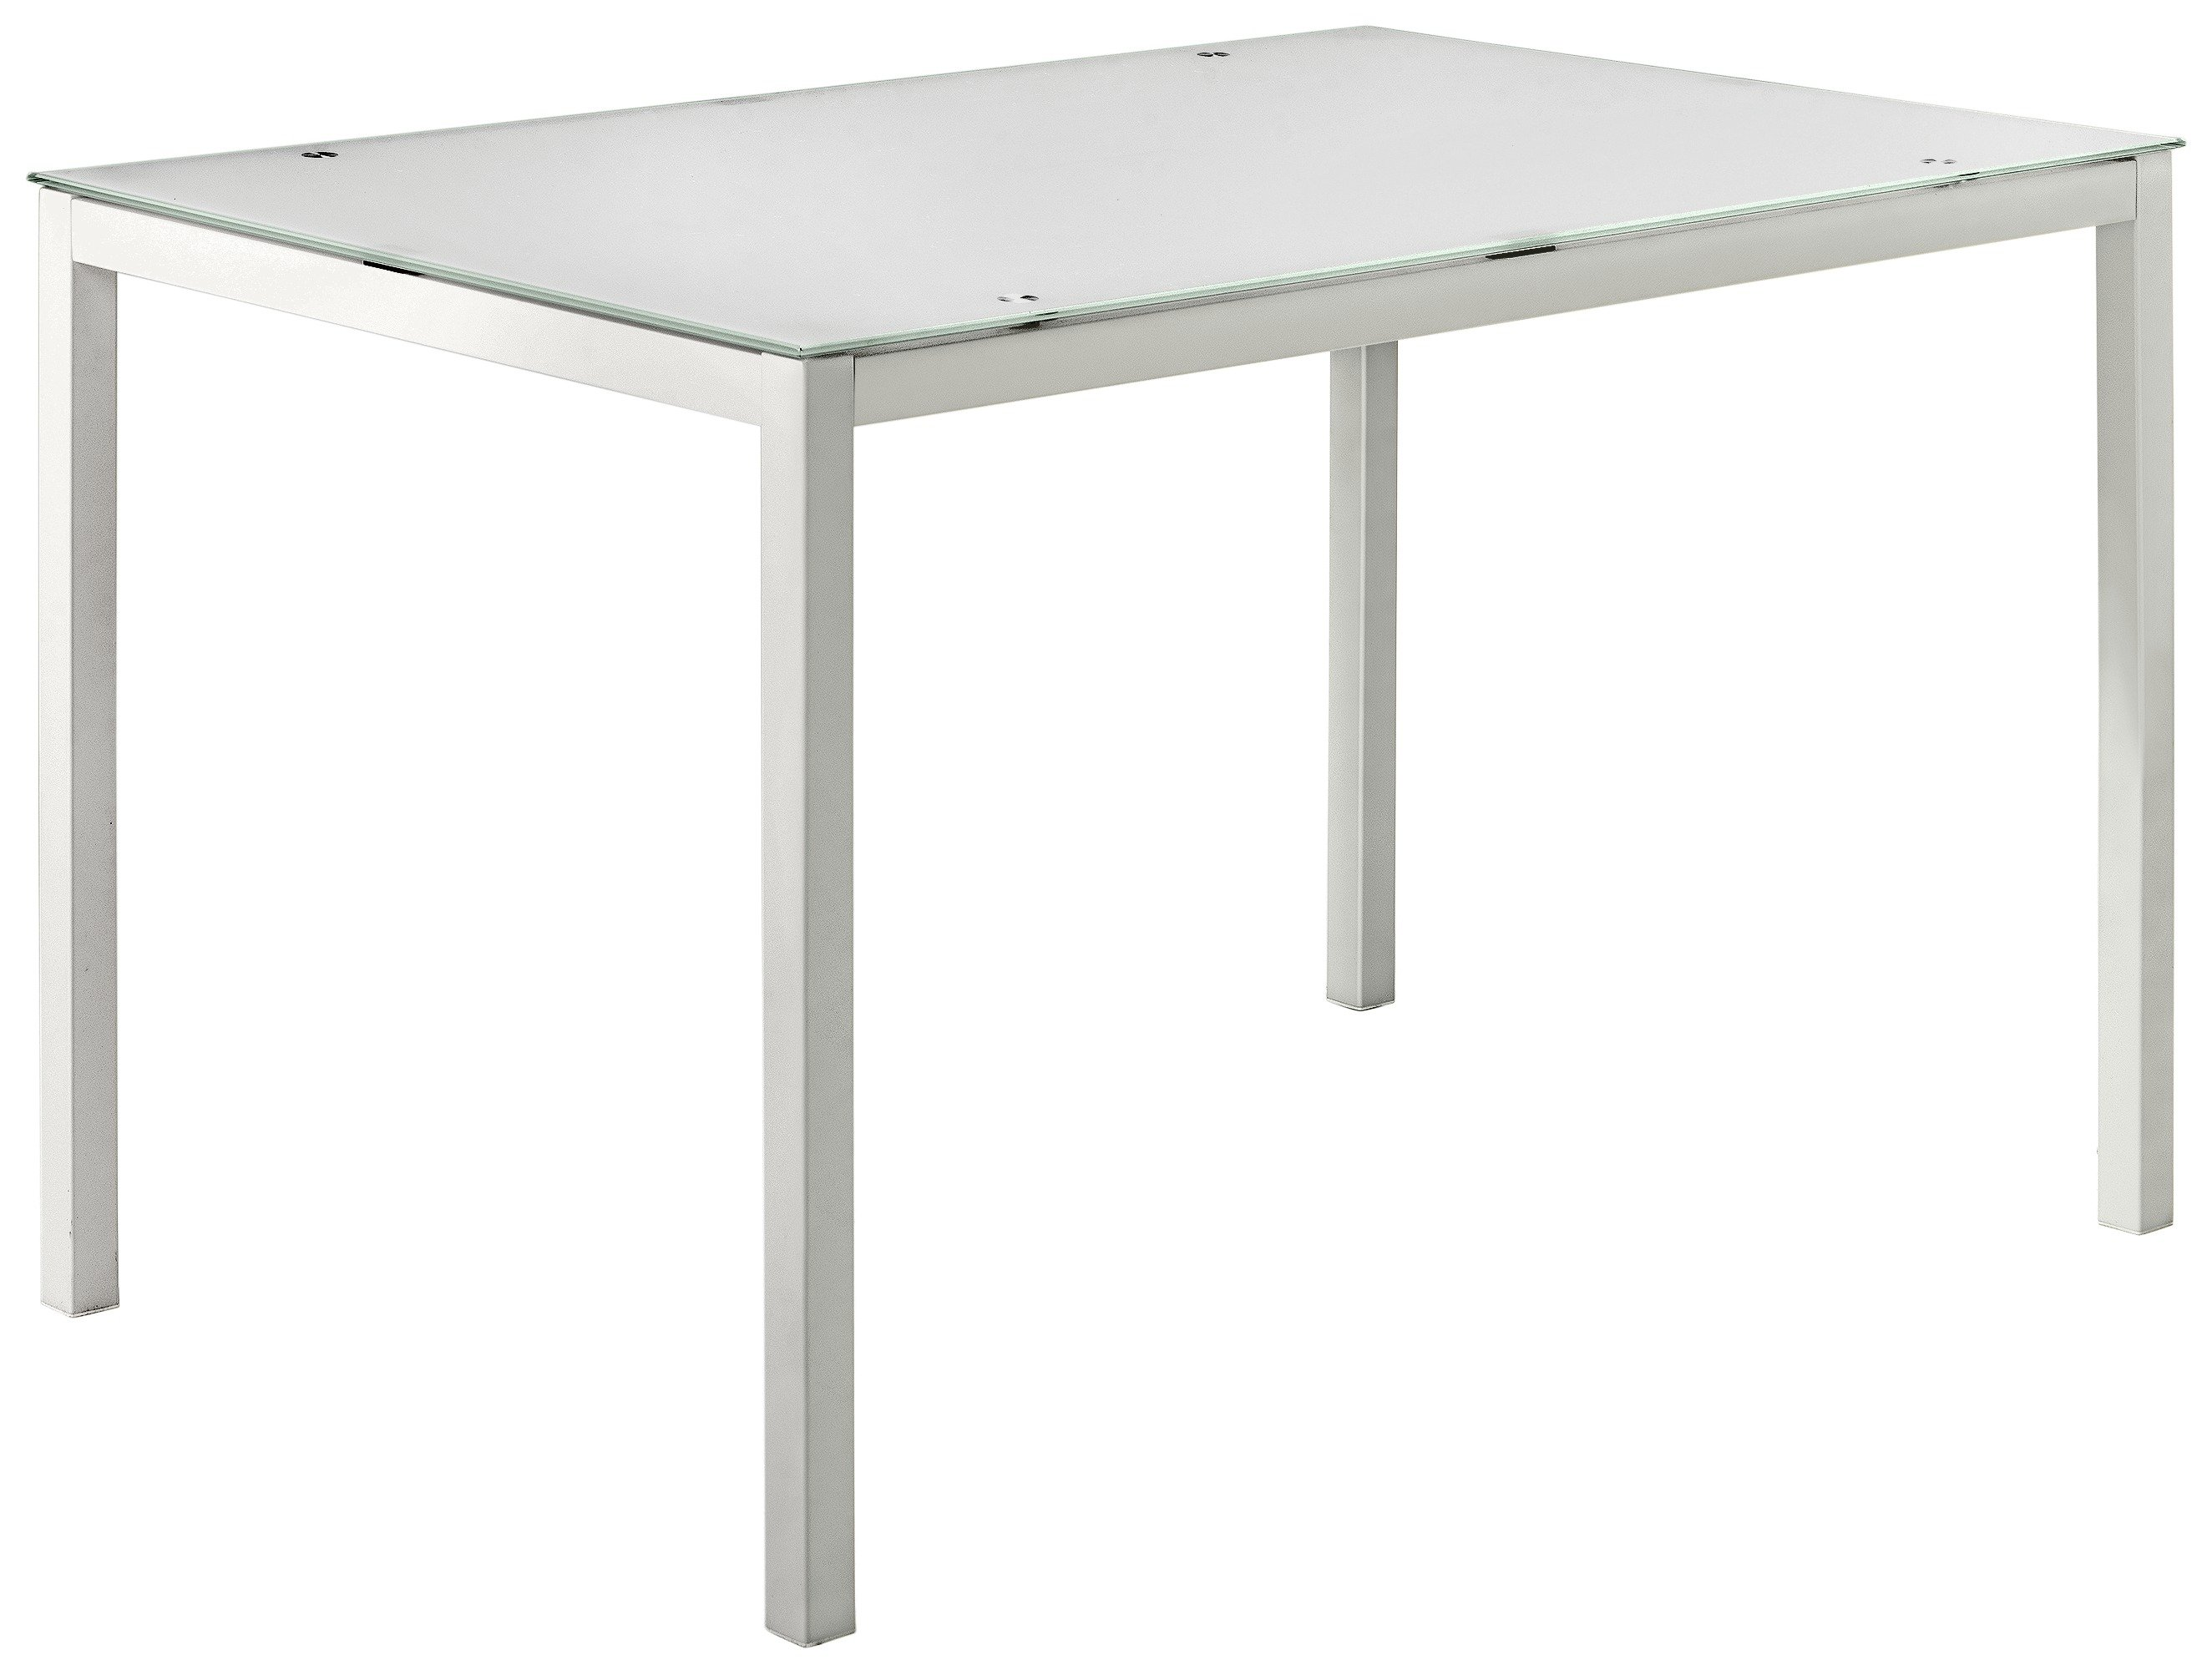 small kitchen table and chairs argos glider patio buy home lido glass dining 4 white click to zoom